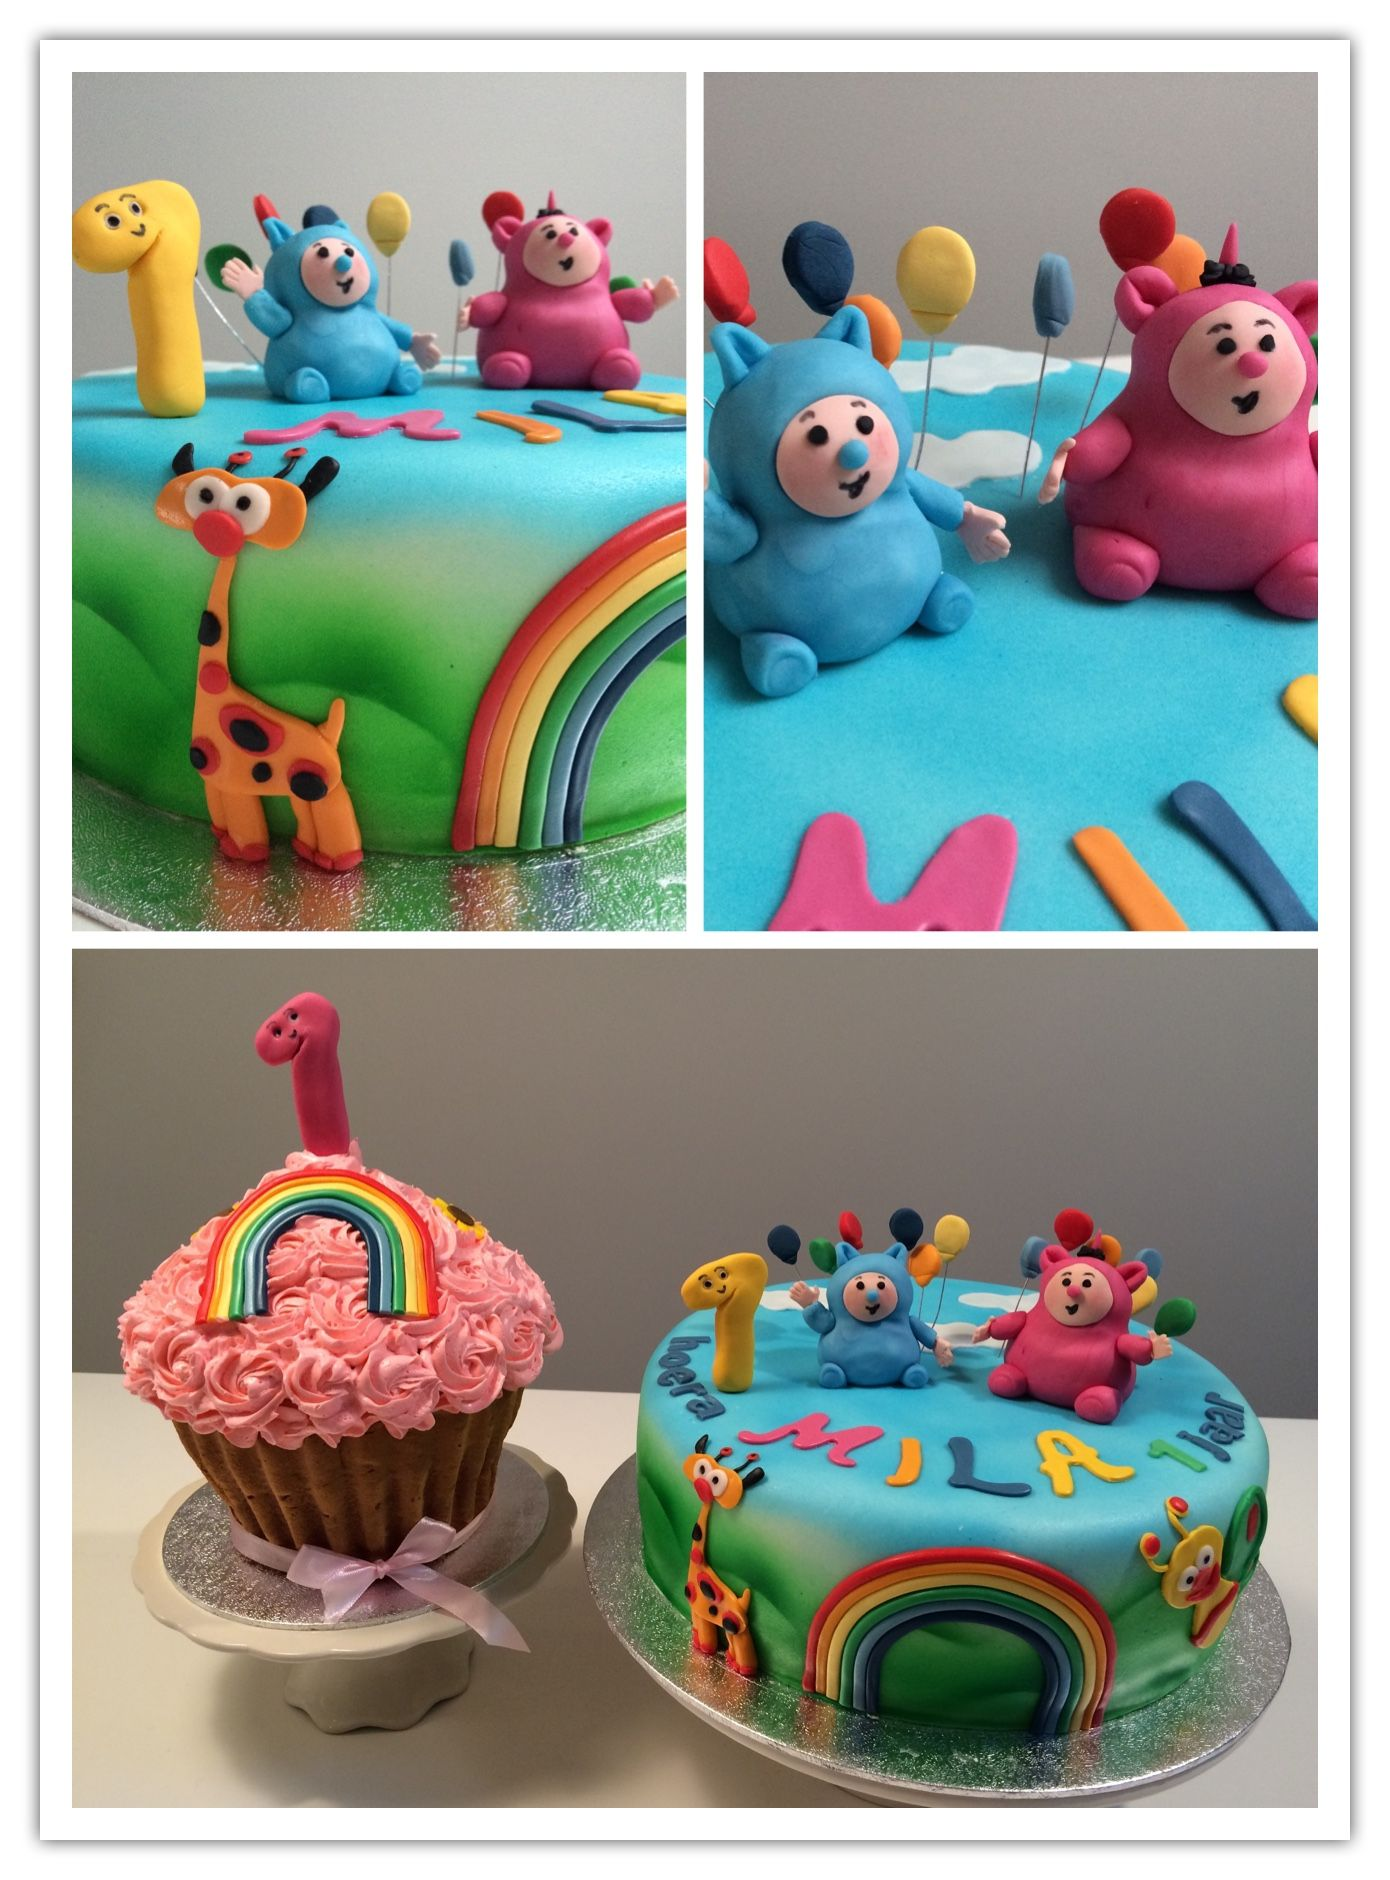 Baby Tv Billy En Bam Bam Taart Moonsbakery Pinterest Tvs